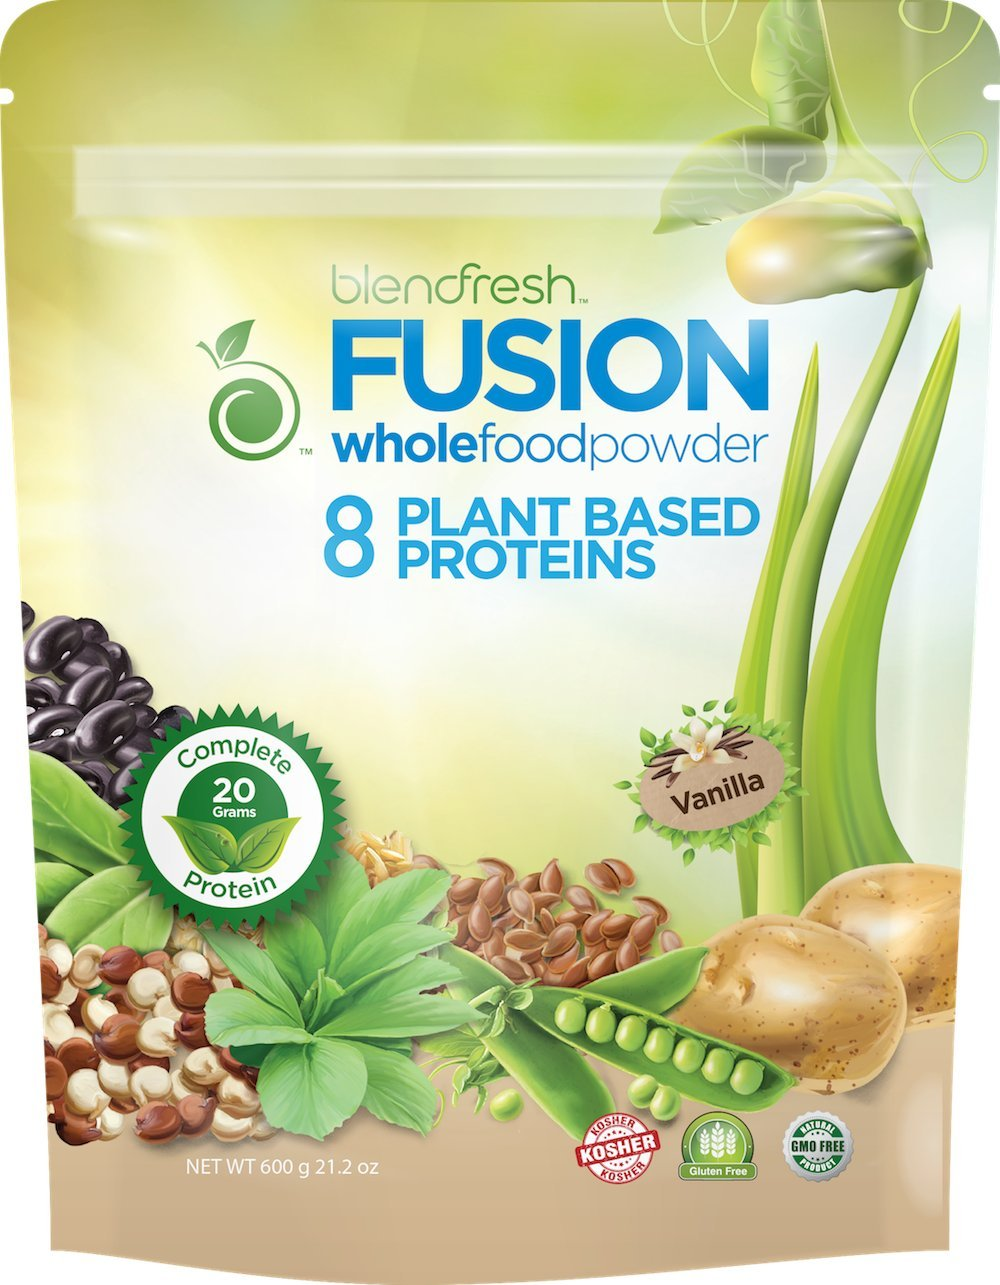 Plant-Based Vanilla Protein | Sourced from 8 Different Plant Based Proteins | 20 Grams/Serving | by Blendfresh.